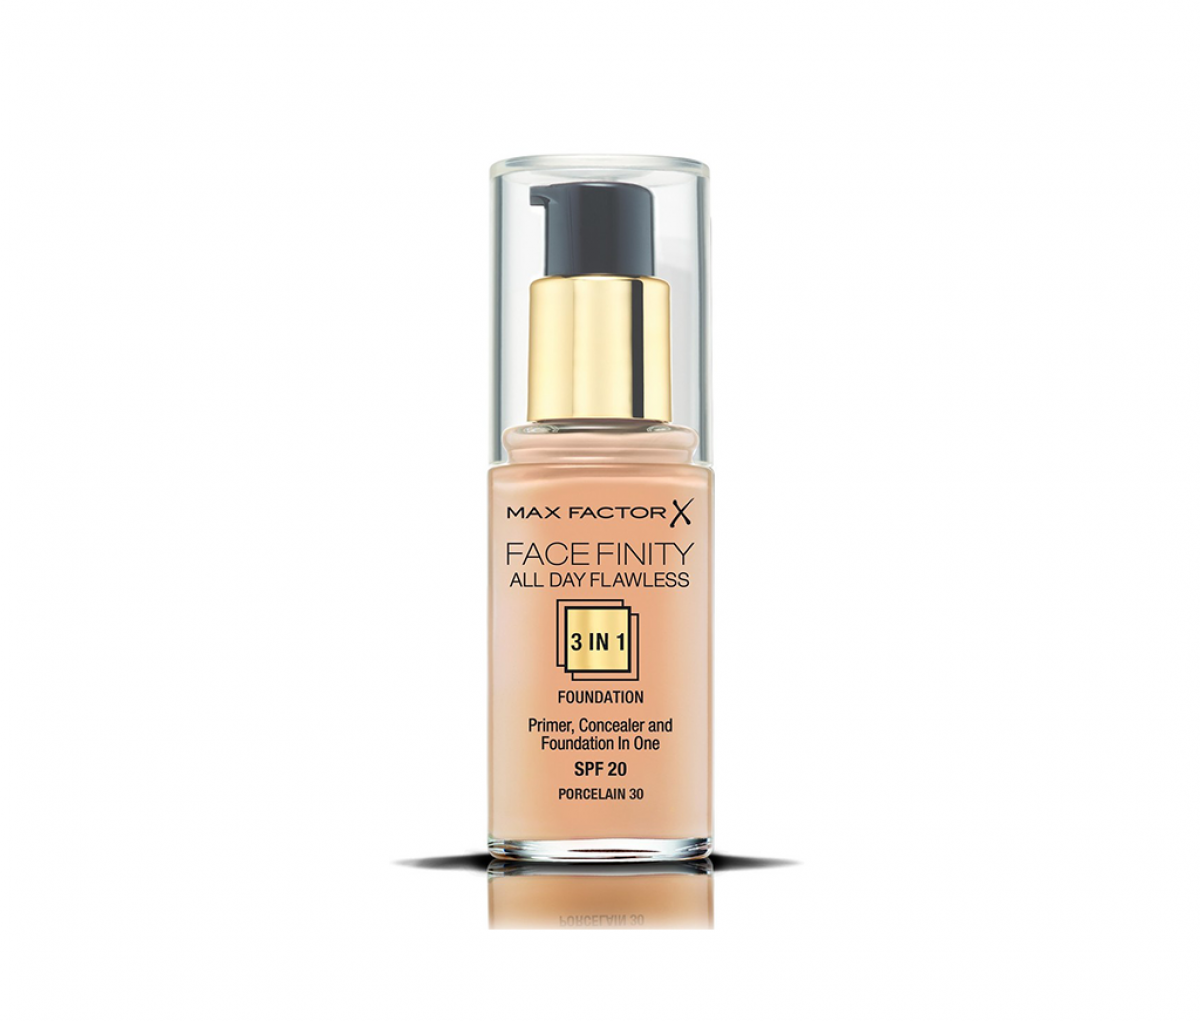 Max Factor 3in1 Face Finity 30 Porcelain Foundation